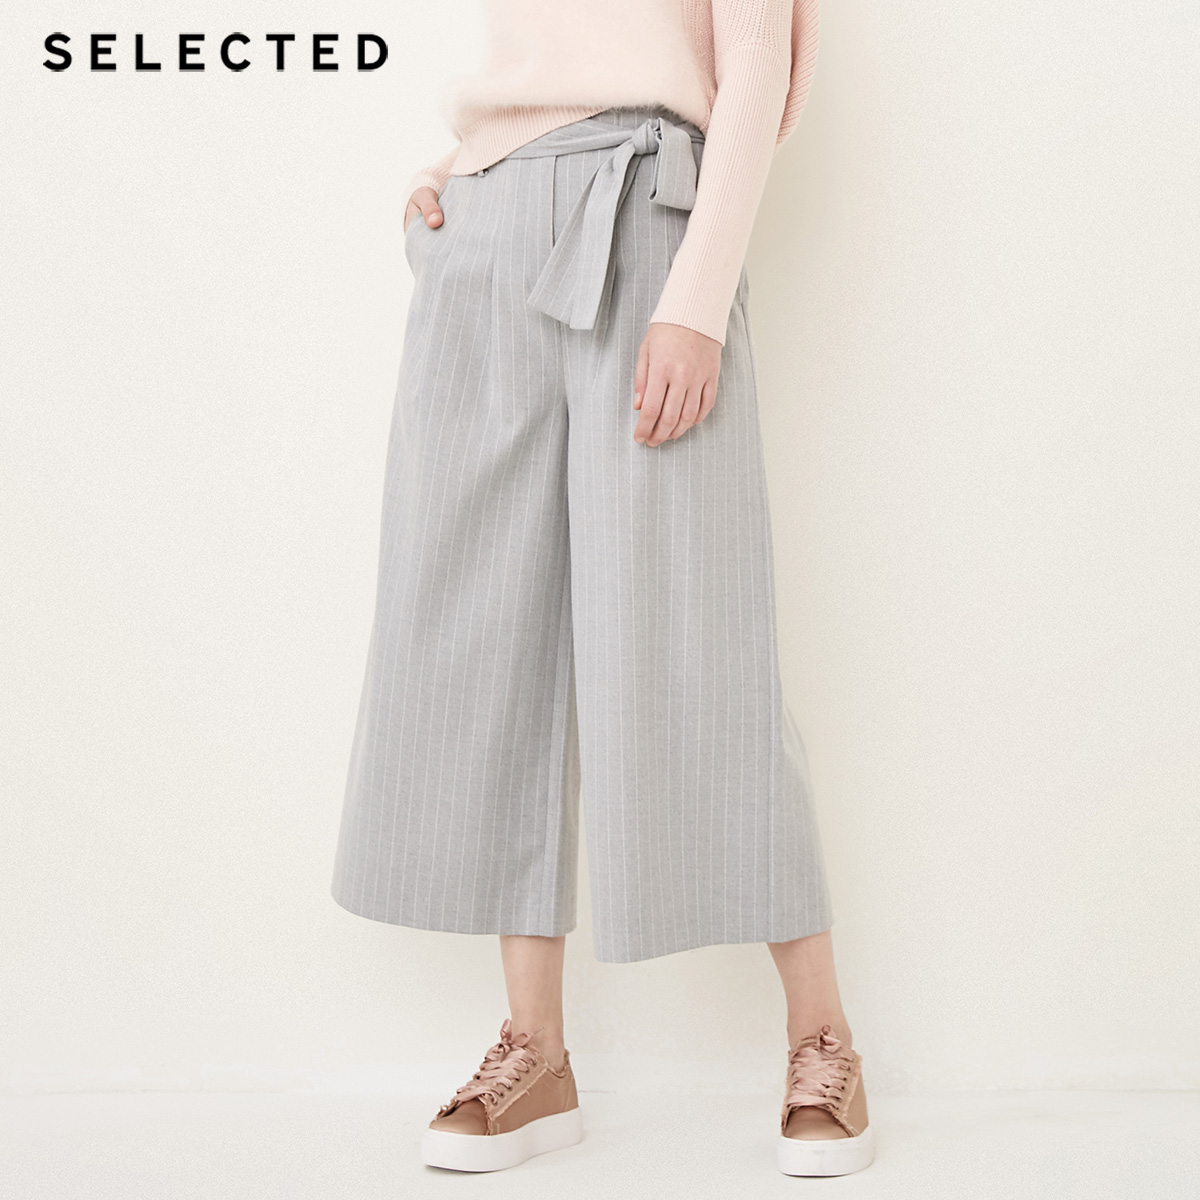 SELECTED Women's Autumn Striped Lace-up Loose Fit Wide-leg Casual   Capri     Pants   S|418114510